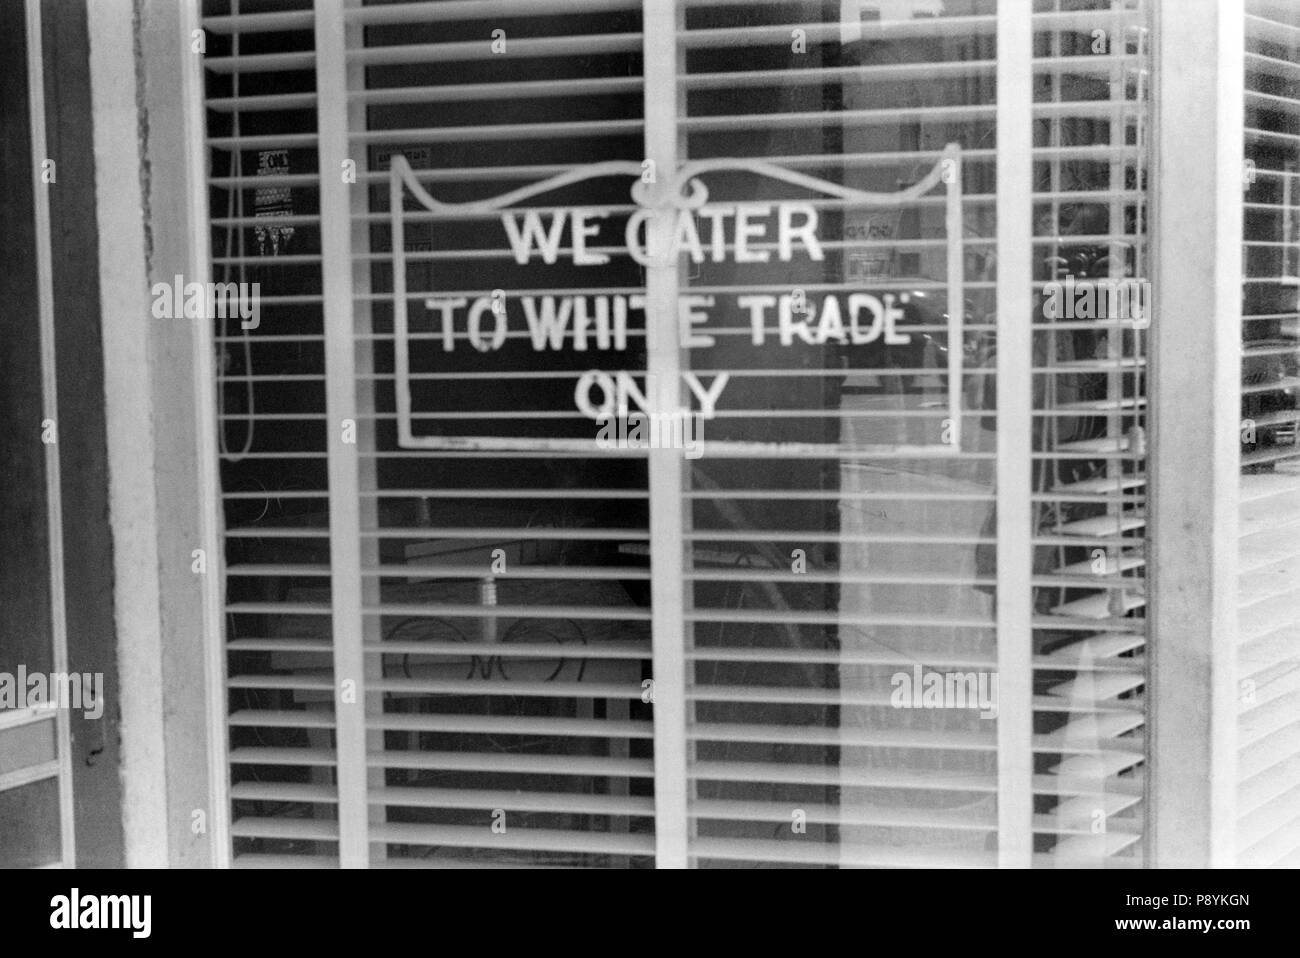 Restaurant With Sign We Cater To White Trade Only